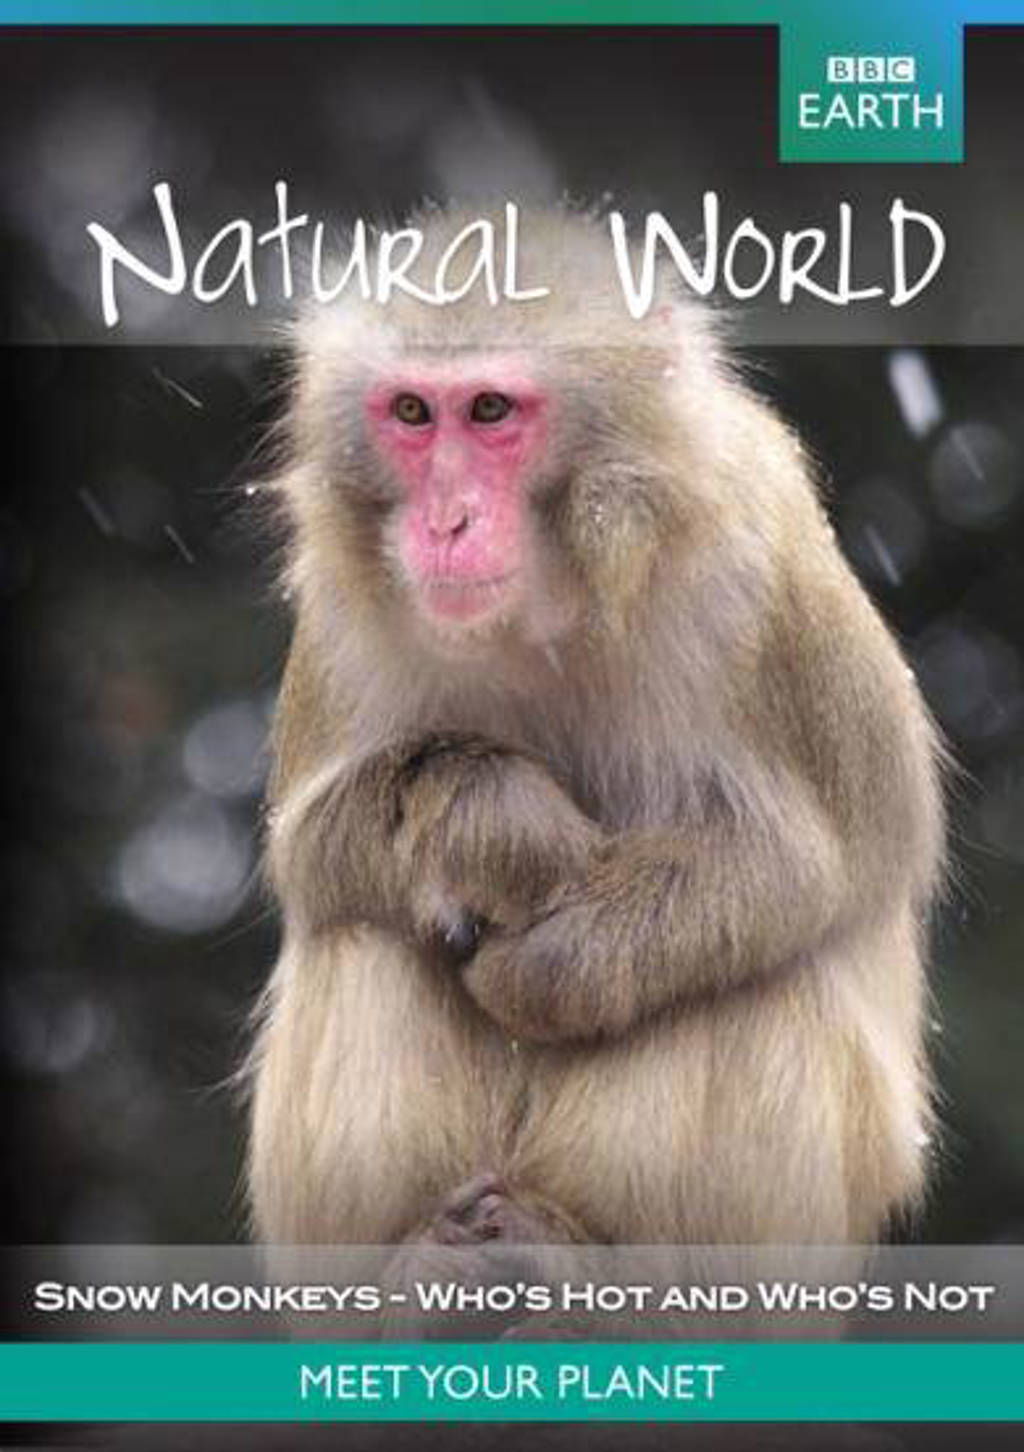 BBC earth - Natural world natural world collection snow monkeys (DVD)